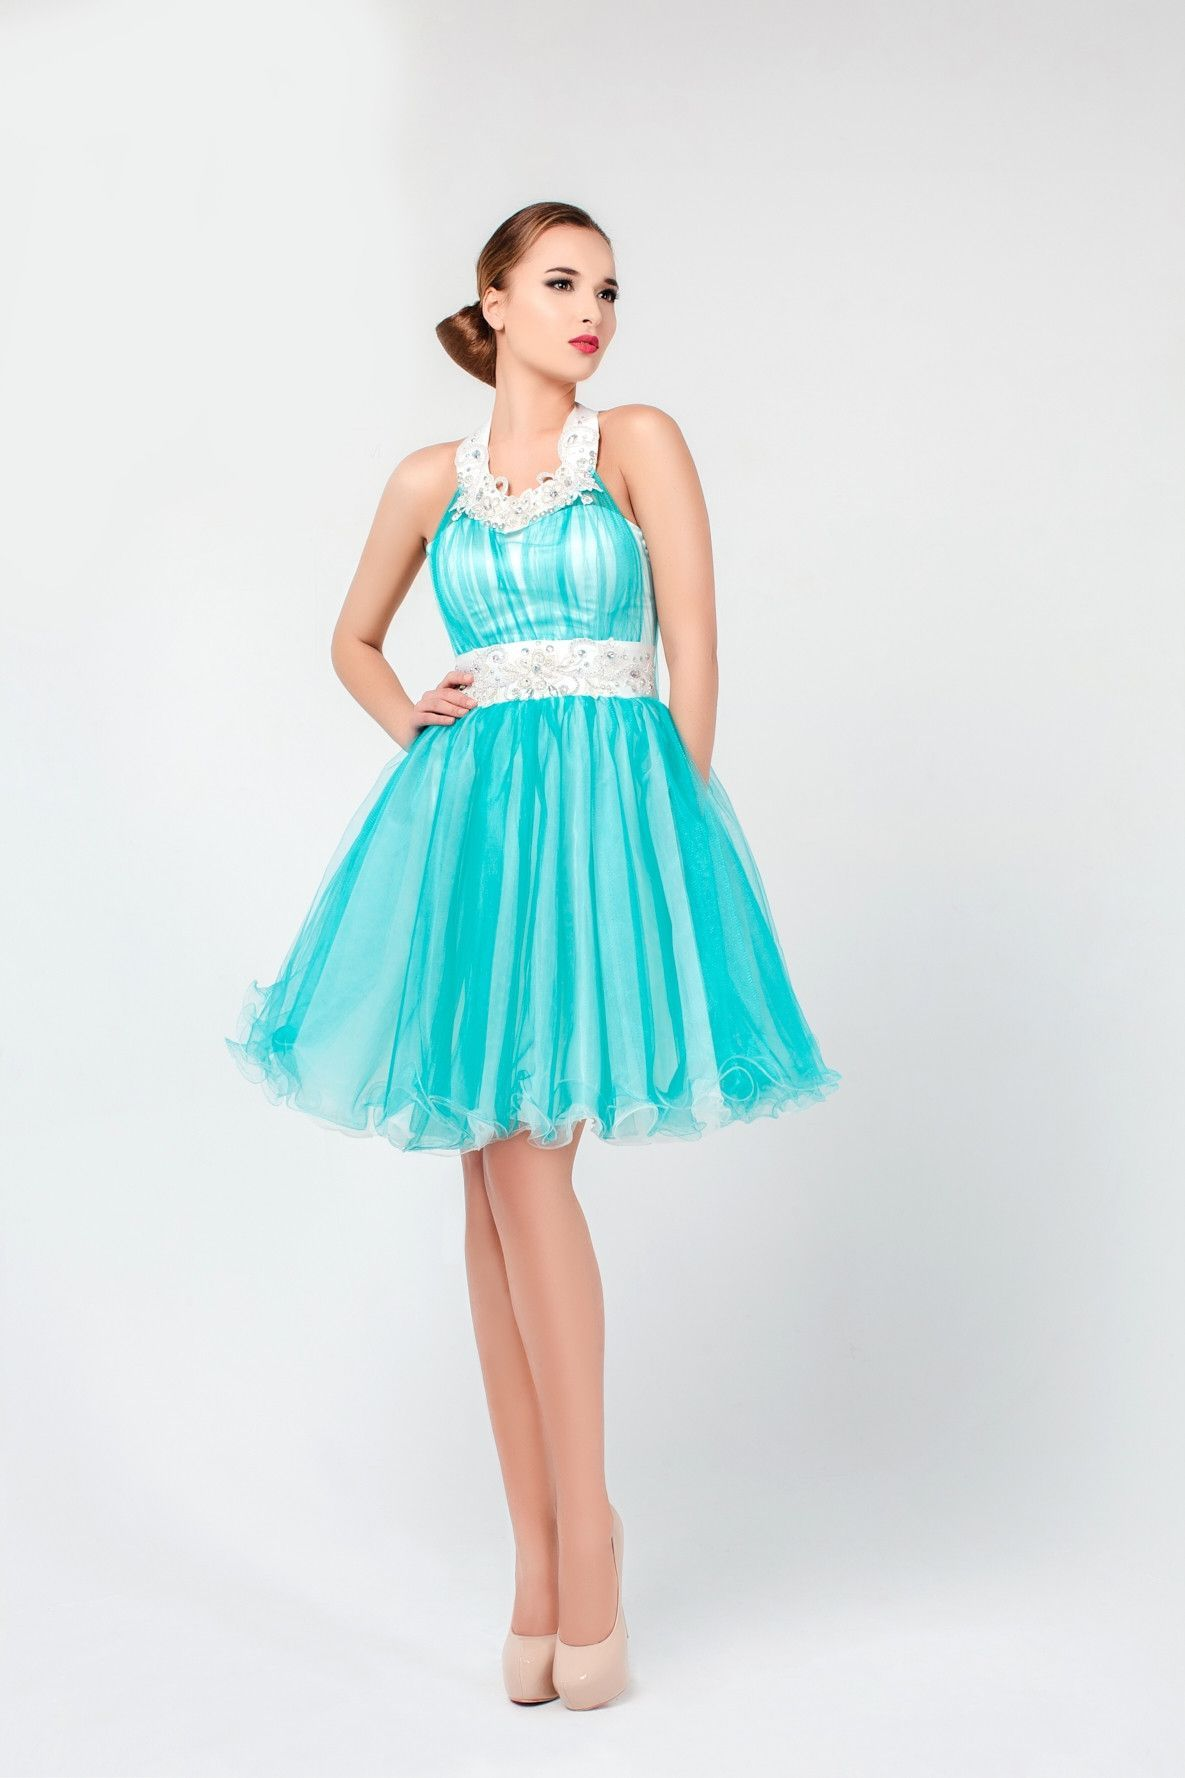 Short A-line Organza Prom Dress | Dress belts, Prom and Shorts